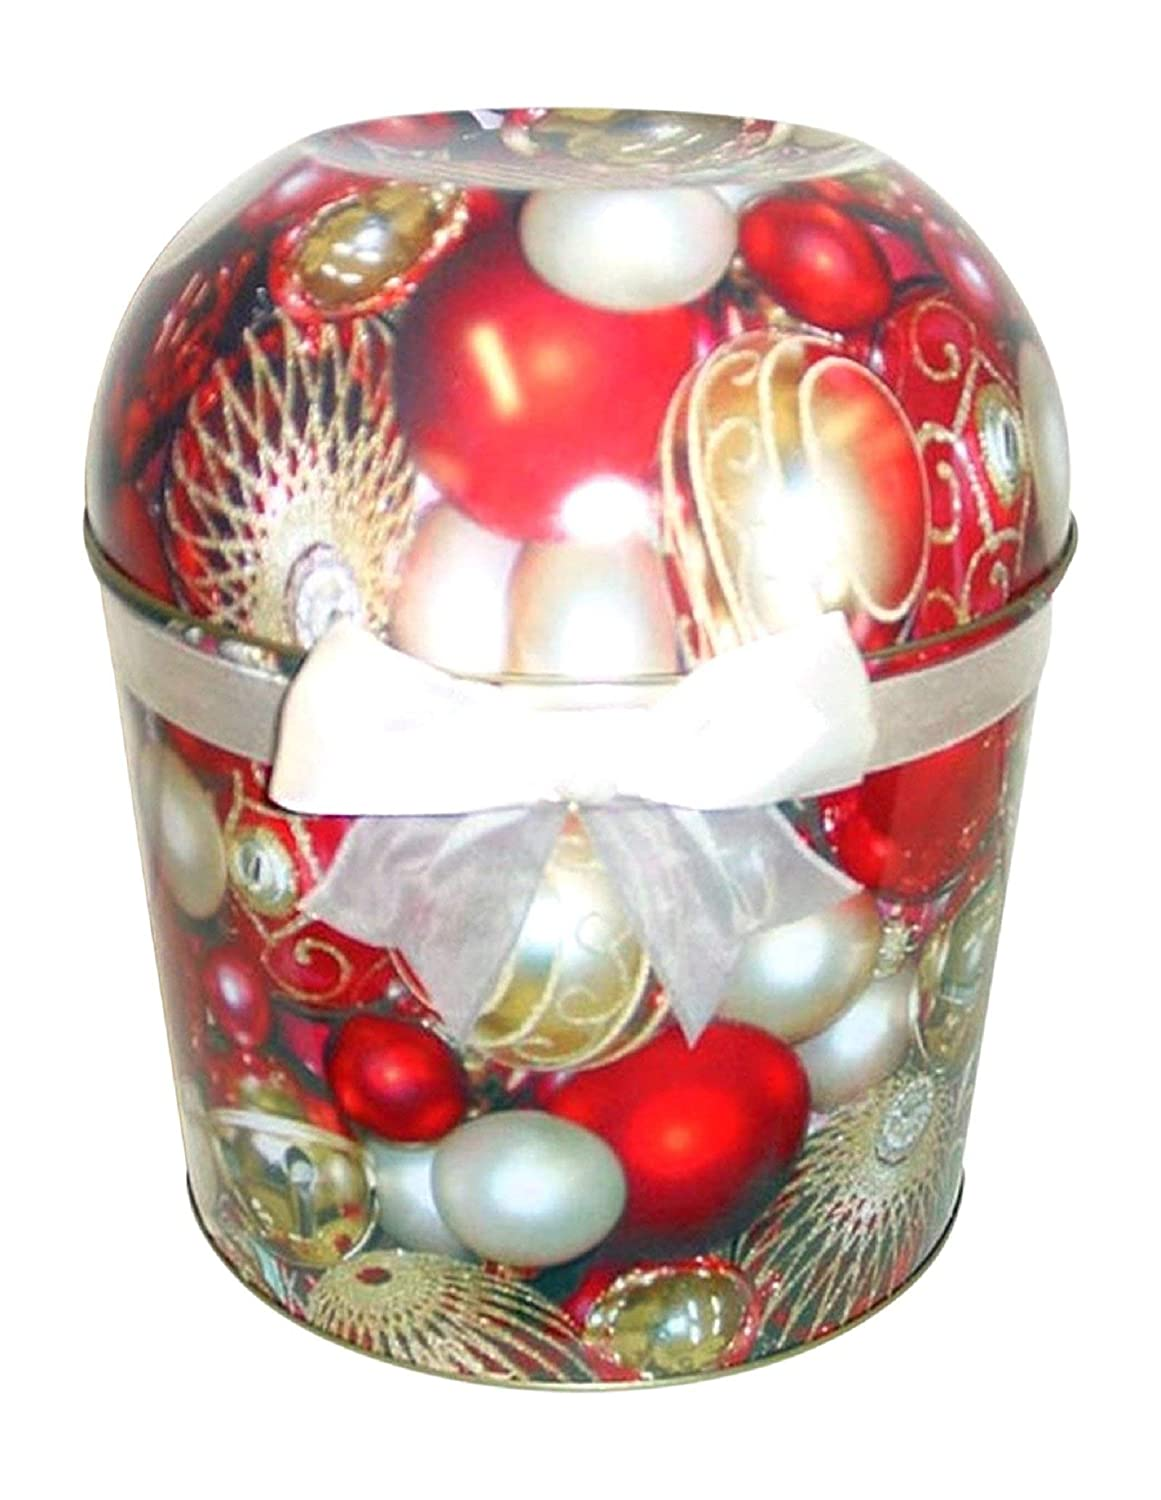 Red Christmas Ornament Popcorn Tin 1.75 Gallon Pick Your Flavor (Xtra Cheddar Cheese Please)